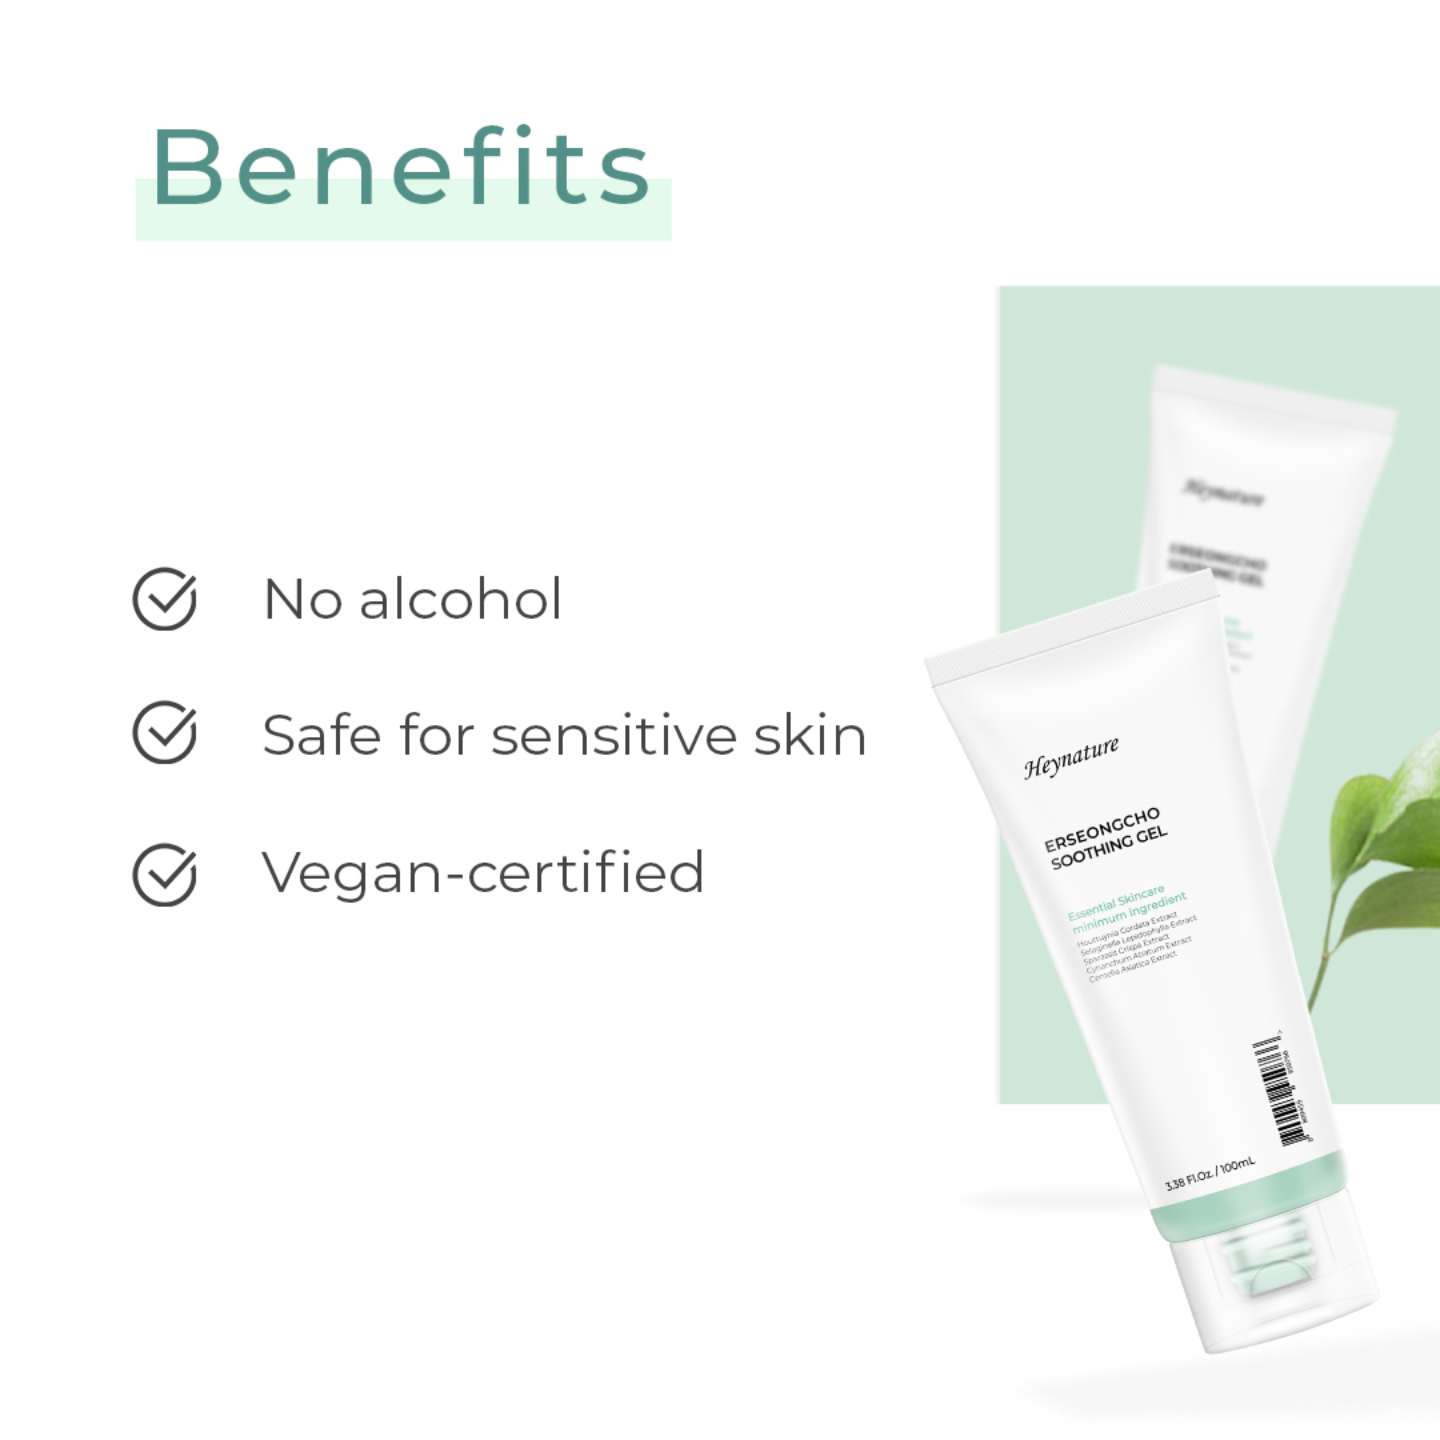 Heynature Erseongcho Soothing Gel